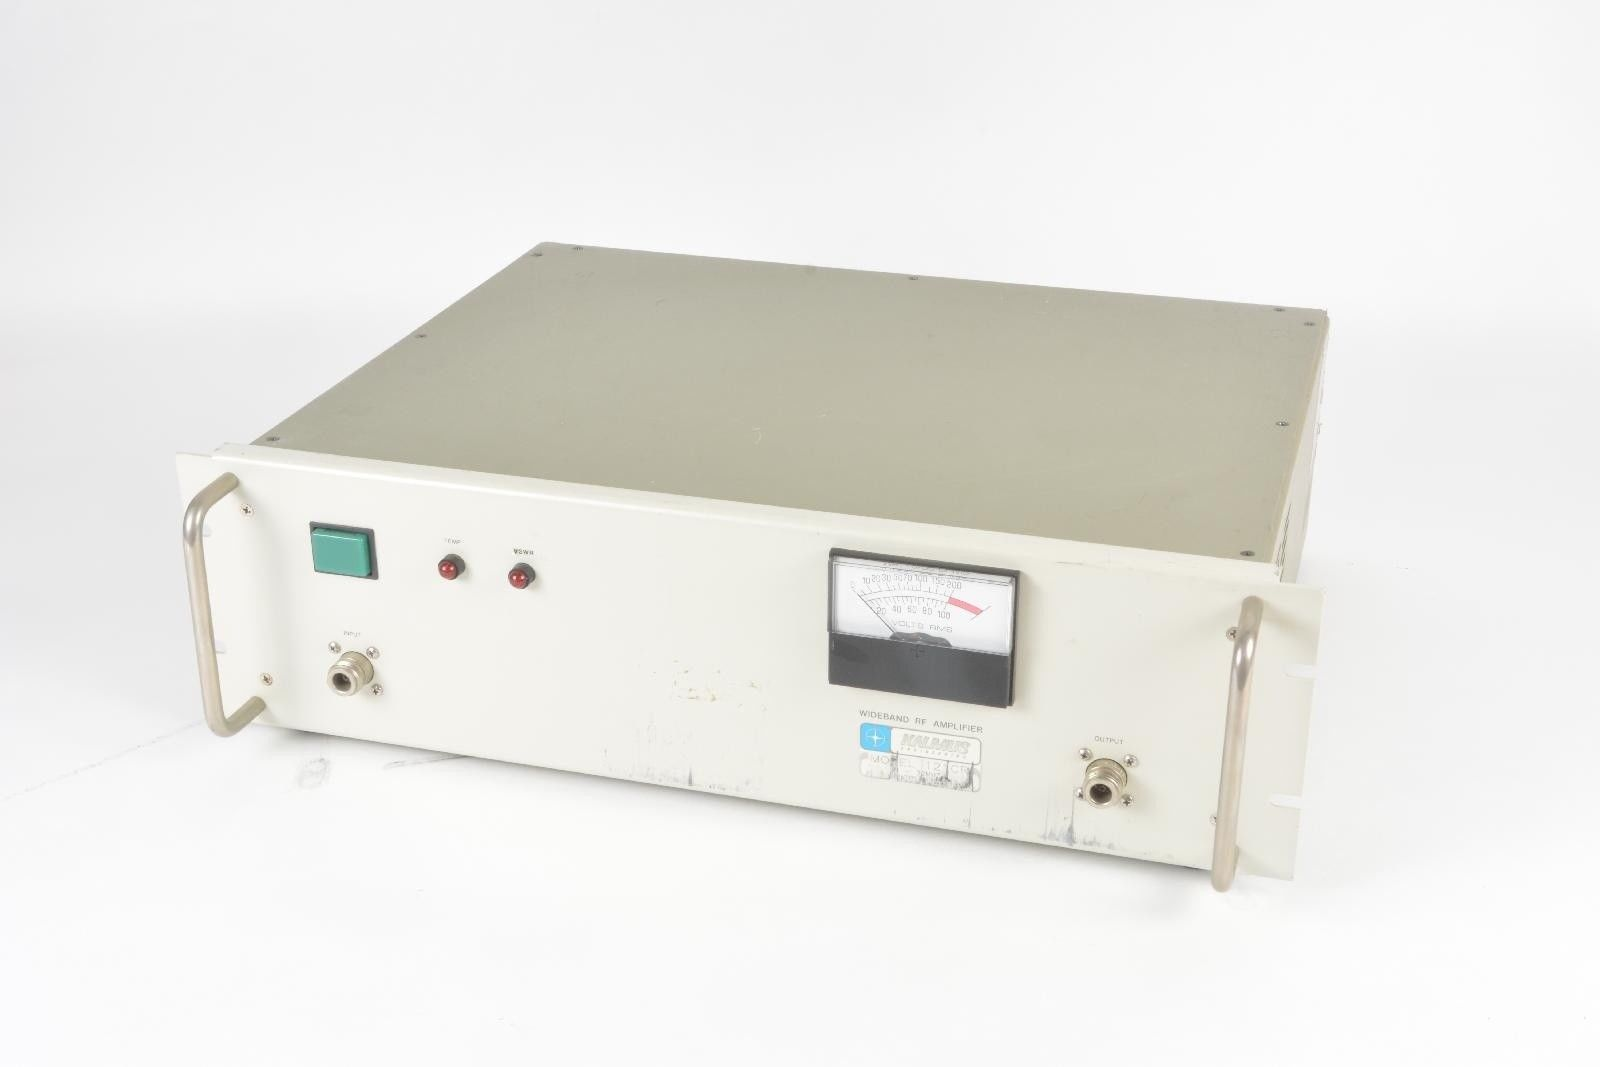 kalmus-engineering-121cr-wideband-rf-amplifier-used-equipment-0.jpg